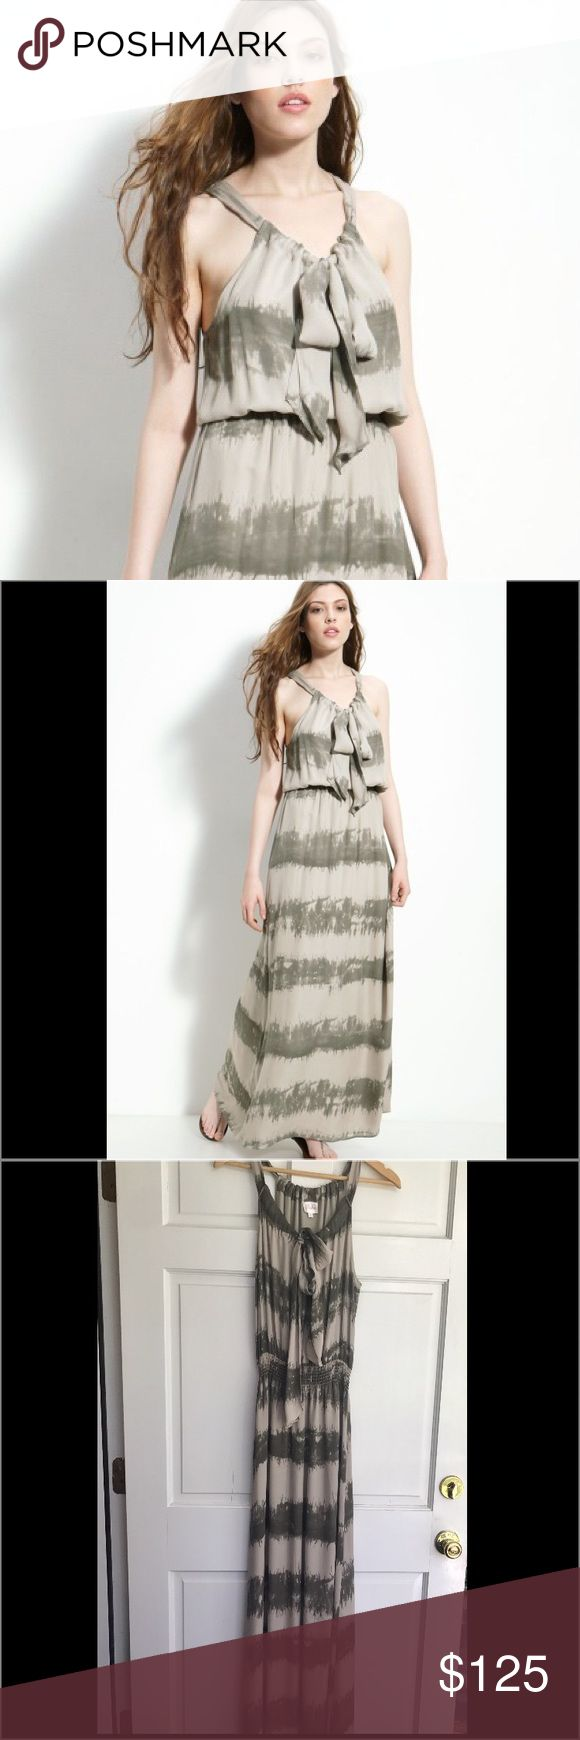 Parker 100% silk georgette maxi dress -L Gorgeous flowing tan & taupe tie Die print Blouson silk maxi dress with a wide very flattering smocked / elasticized waist & adorable key hole with tie front. Originally purchased for 280+ this dress is in Excellent like new condition with zero signs of wear. Parker Dresses Maxi